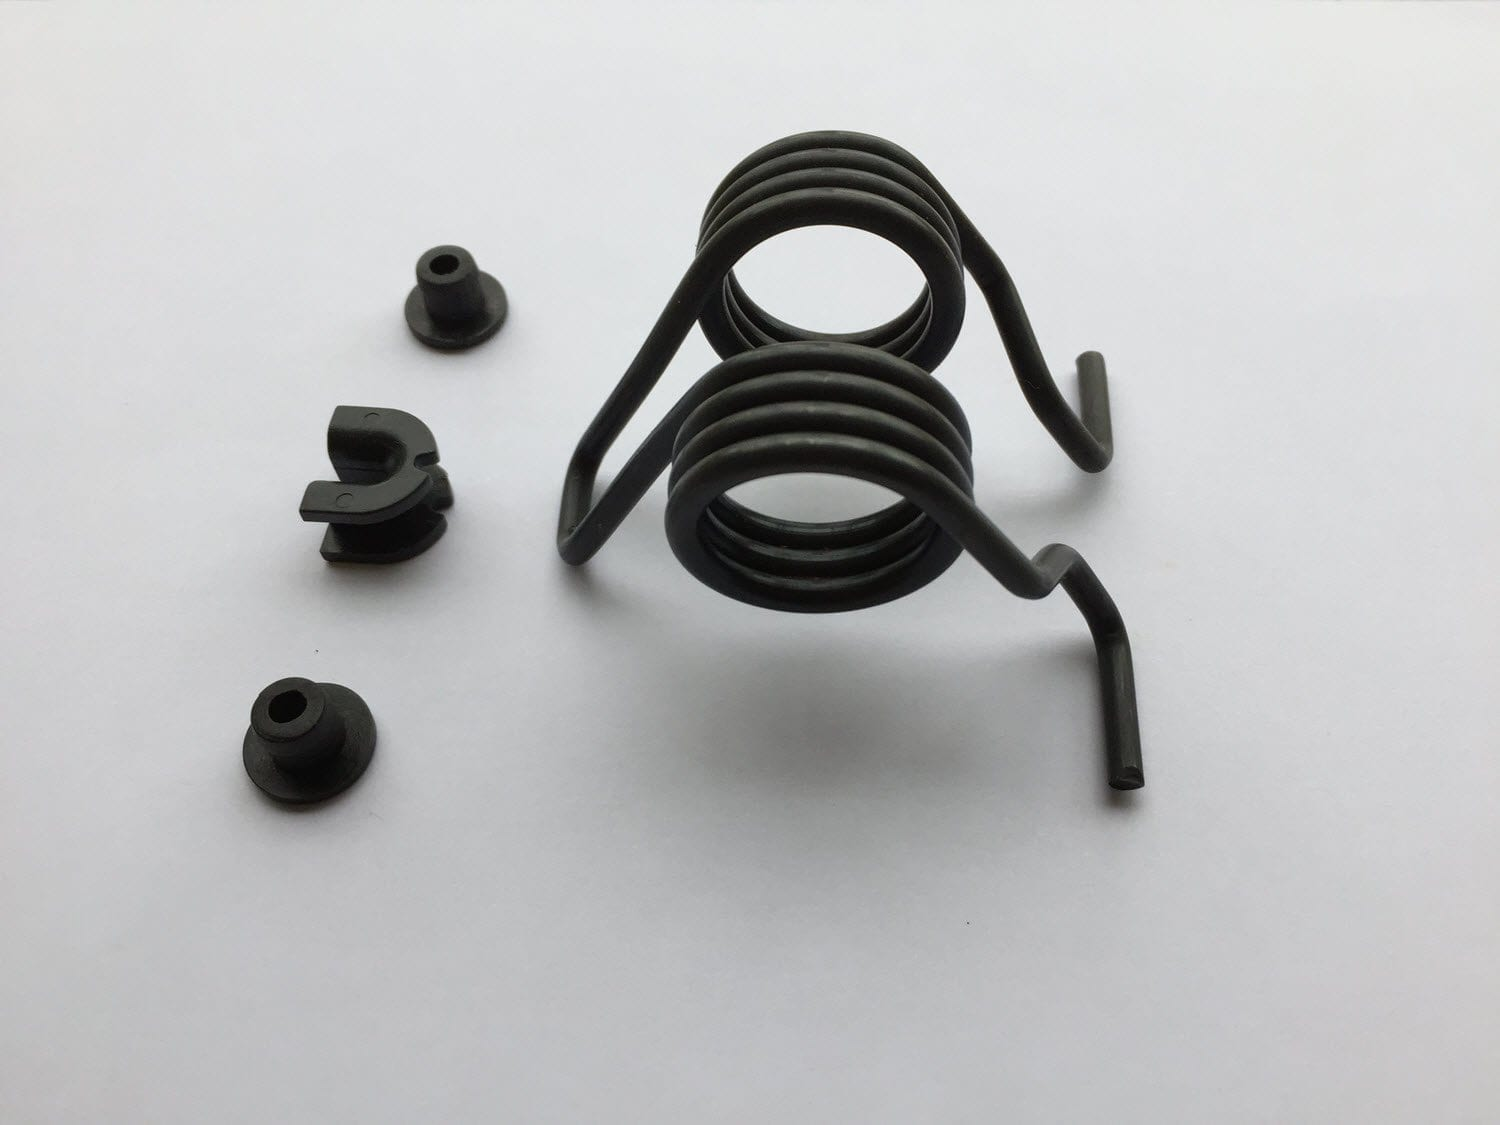 New Product : Clutch Assist Spring!